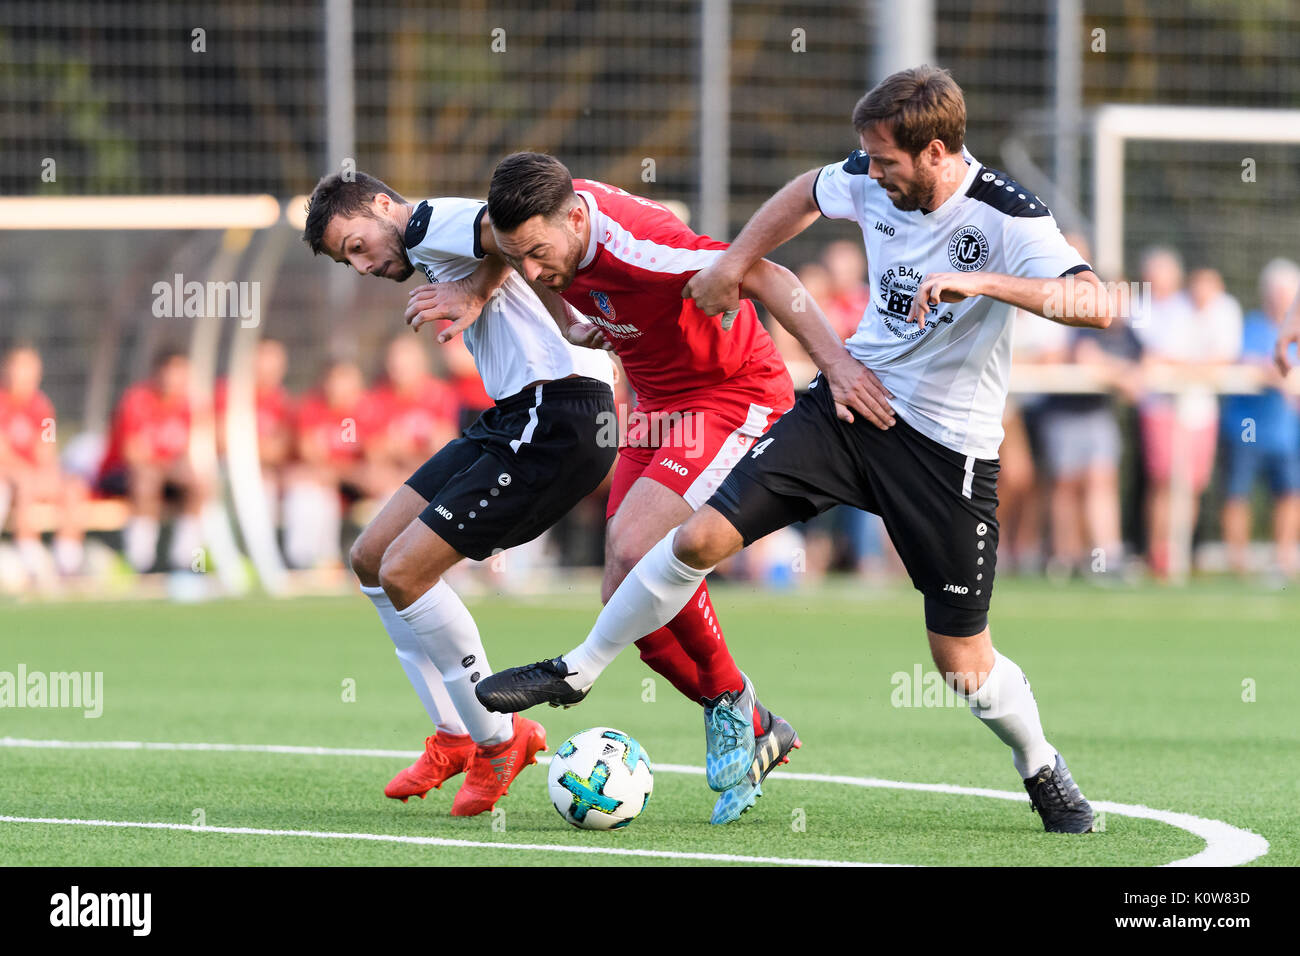 Atsv Mutschelbach: Amateurfussballspieler Stock Photos